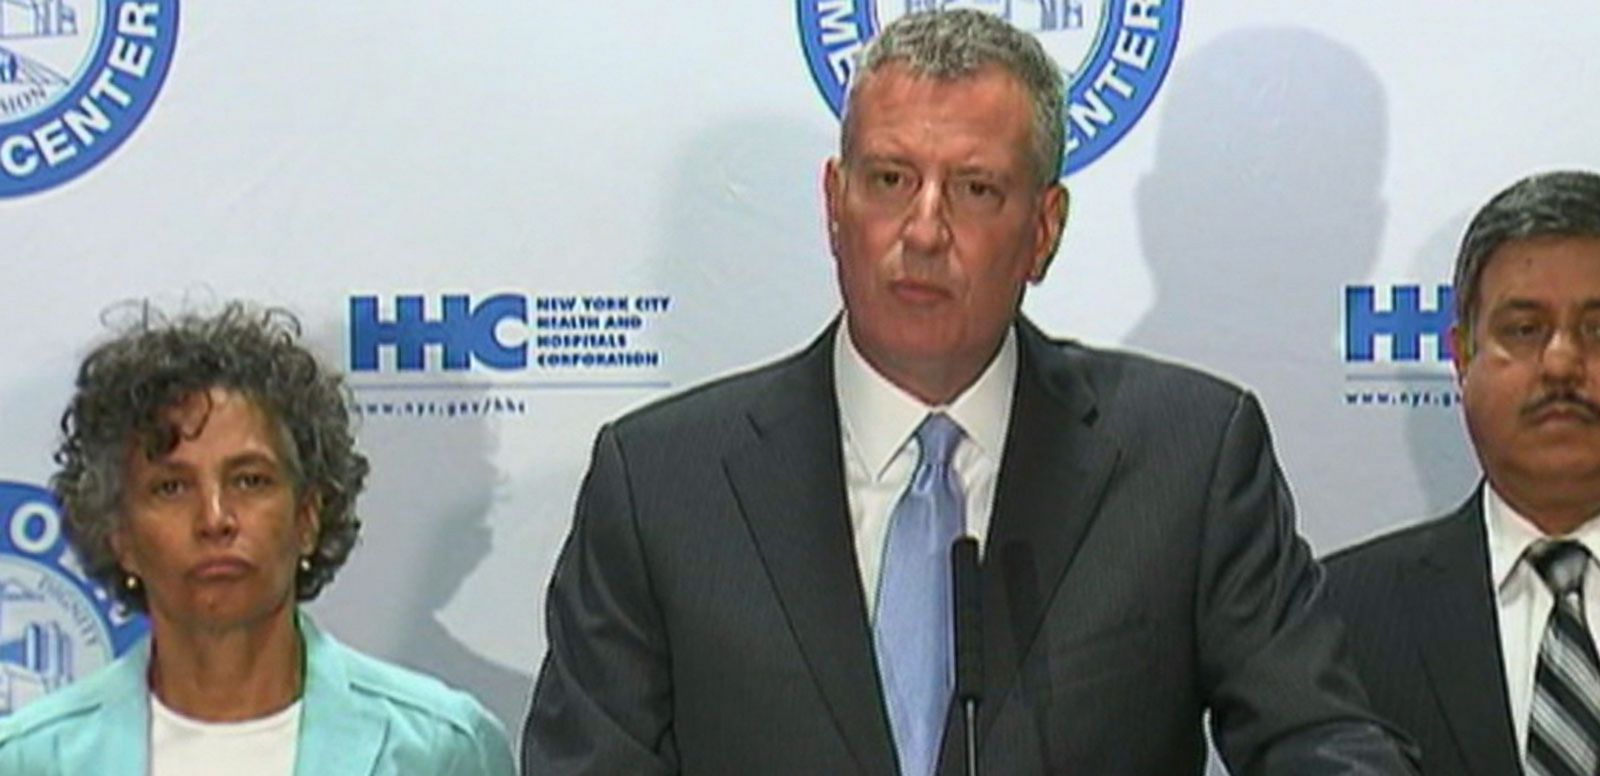 VIDEO: Officials React To Deadly Outbreak of Legionnaires' Disease in NYC